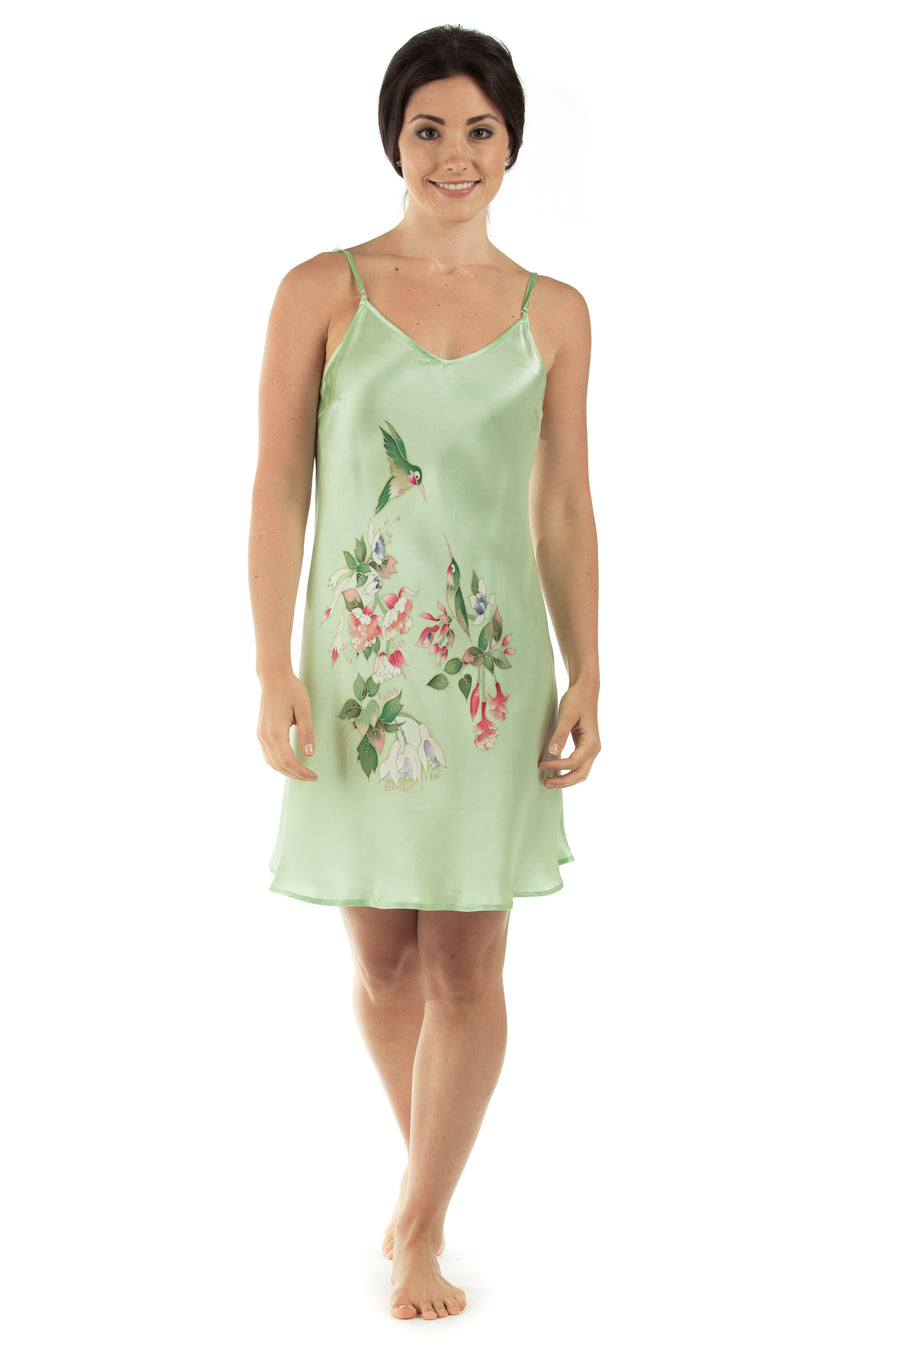 Hummingbirds Gown - Hand Painted Silk Chemise - TexereSilk